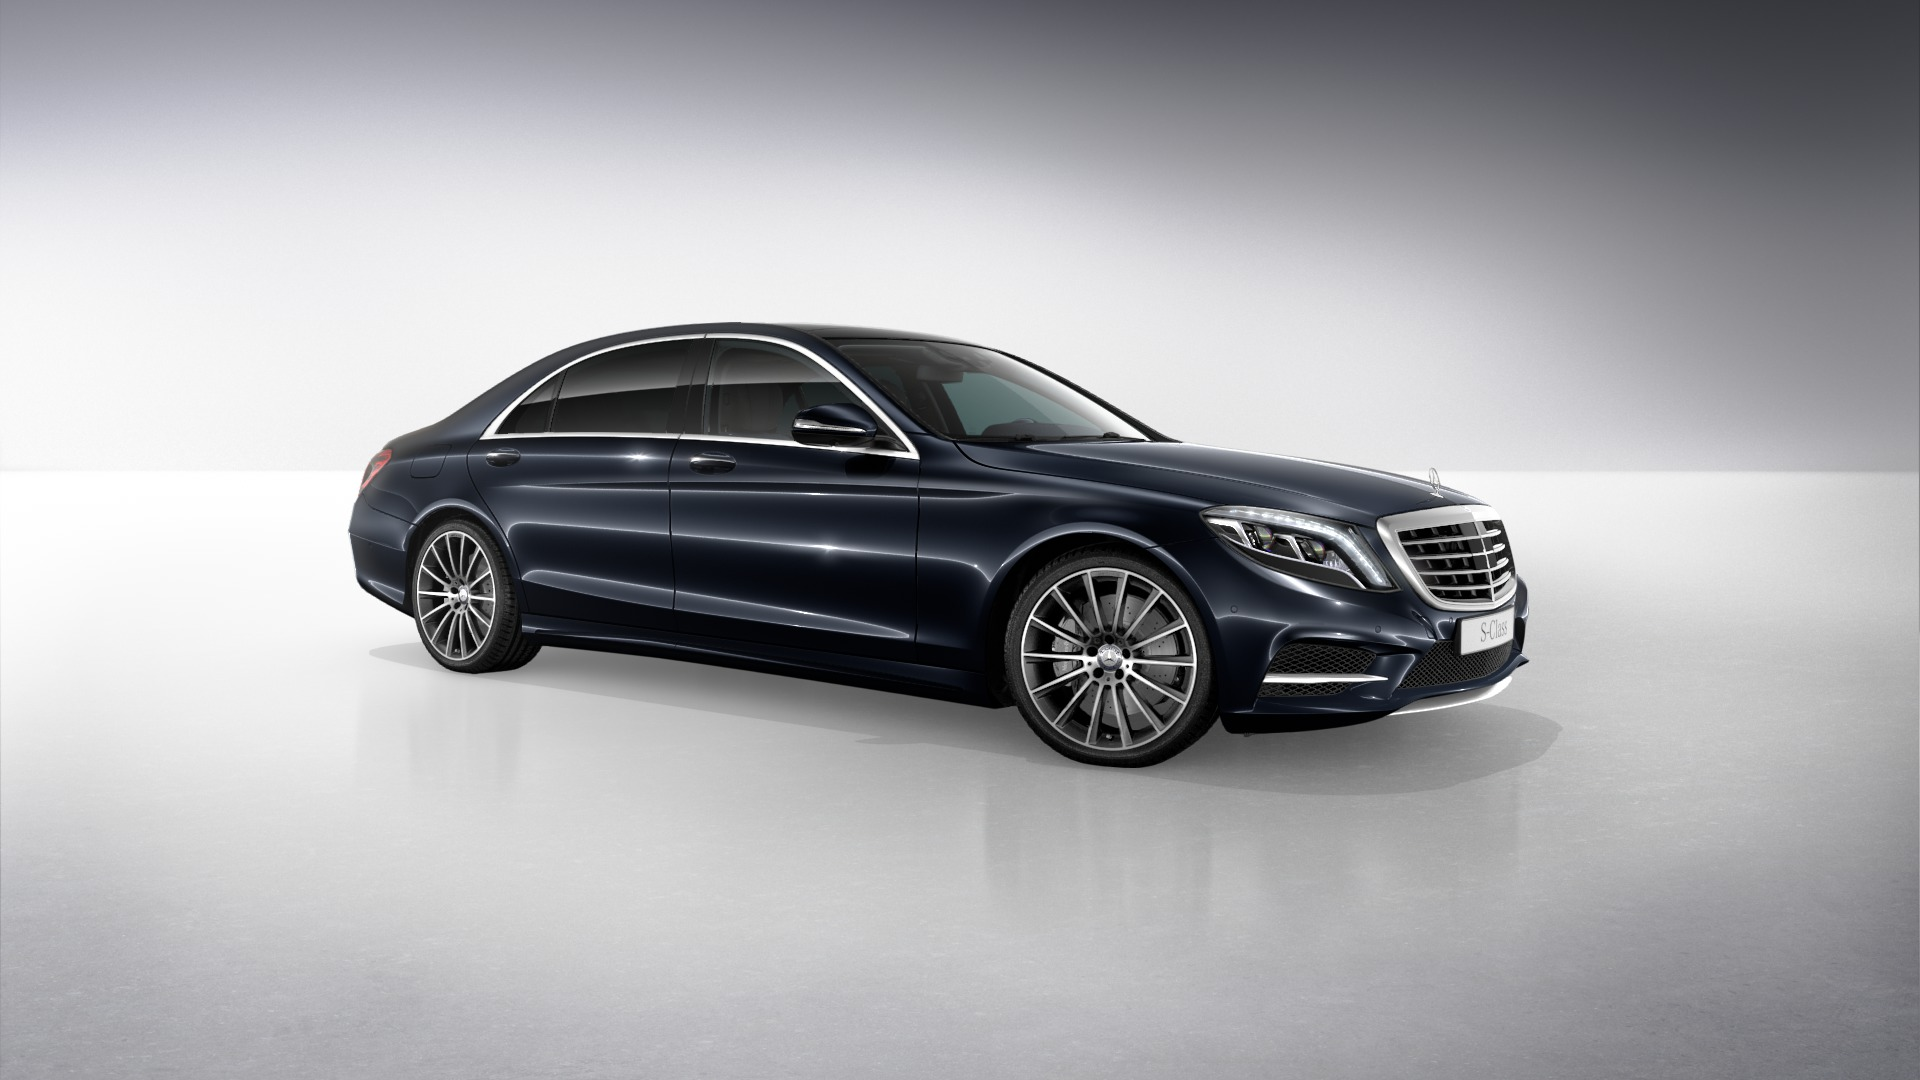 Benzblogger Blog Archiv New 2014 Mercedes Benz S Class Pictures Anthracite Blue Ruby Black Diamond Silver And Verde Brook